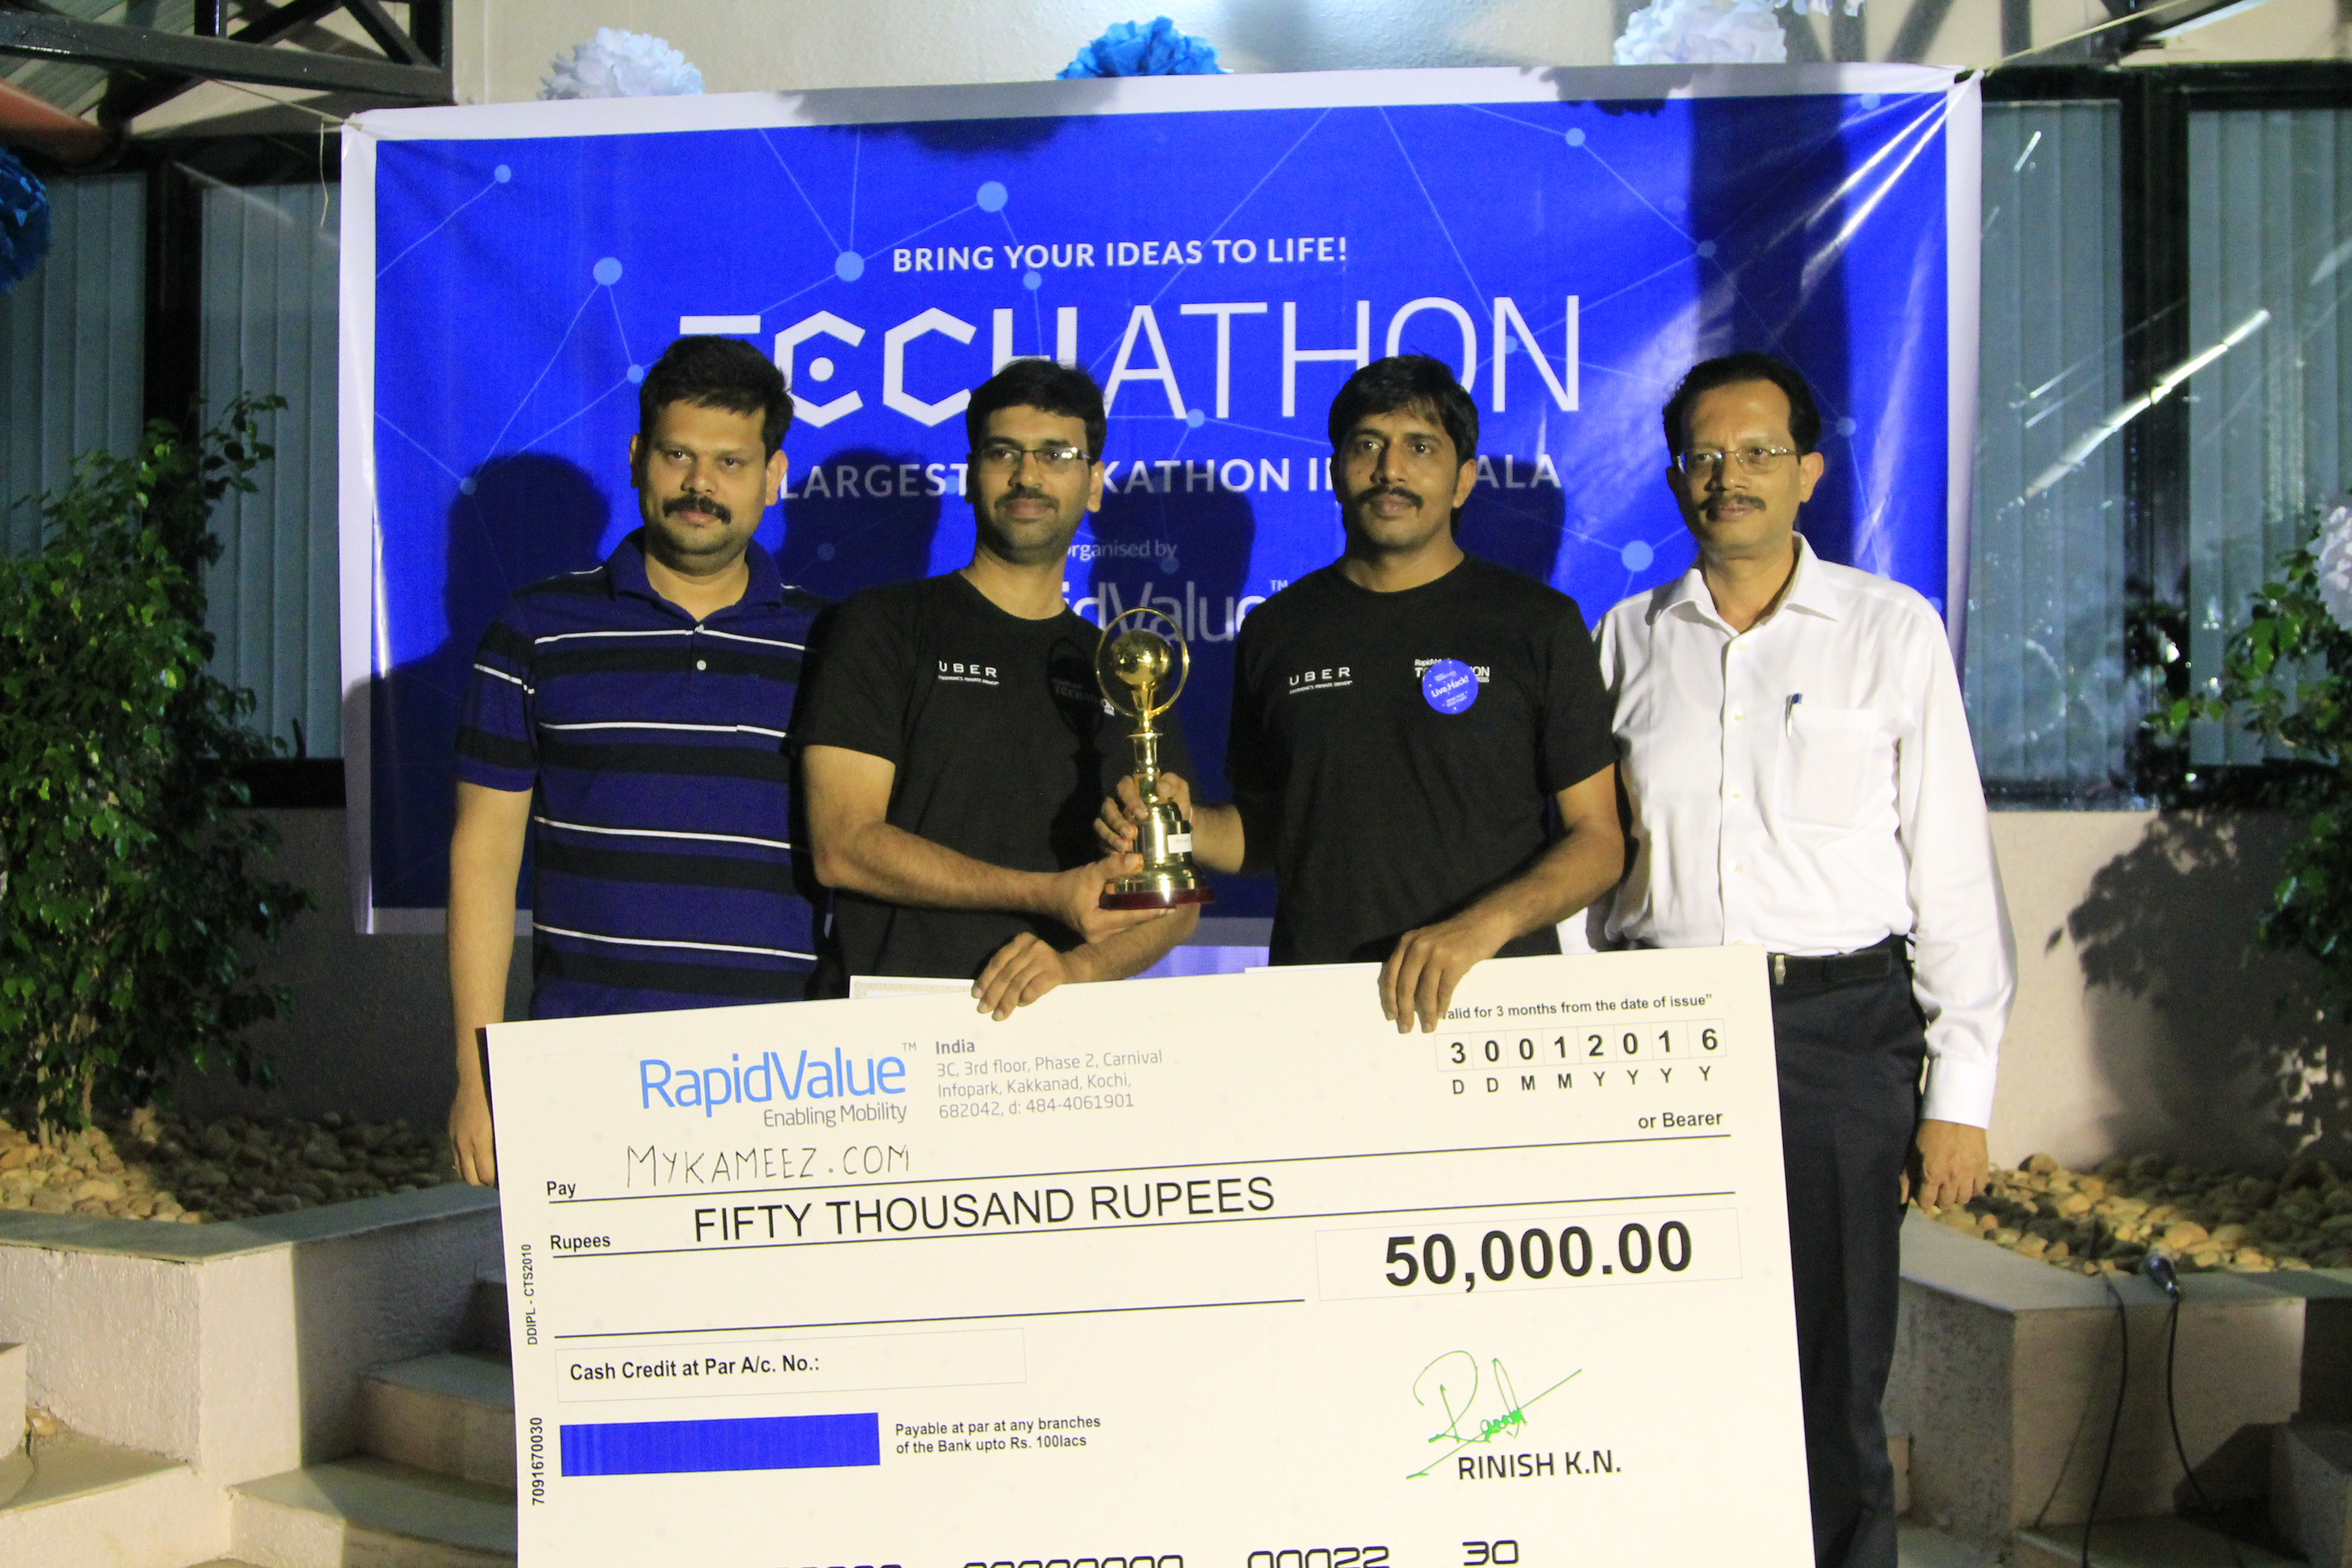 Second place in Techathon